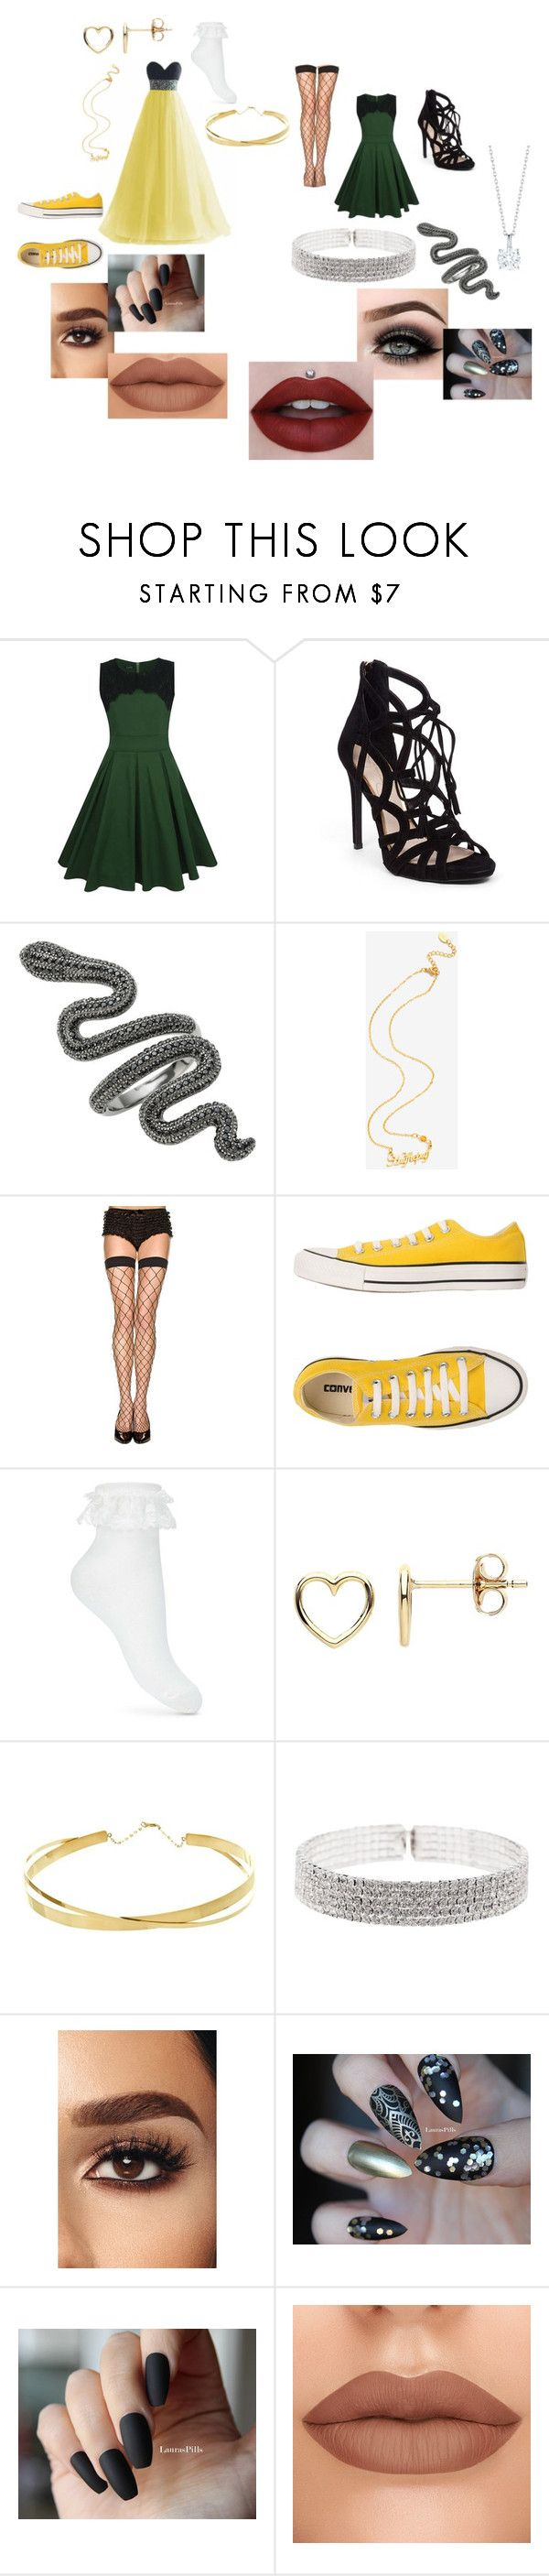 """""""Slytherin or Hufflepuff"""" by shannon-tilley on Polyvore featuring WithChic, Jessica Simpson, Warner Bros., ToBeInStyle, Converse, Miss Selfridge, Estella Bartlett, Lana Jewelry, Natasha and ASAP"""